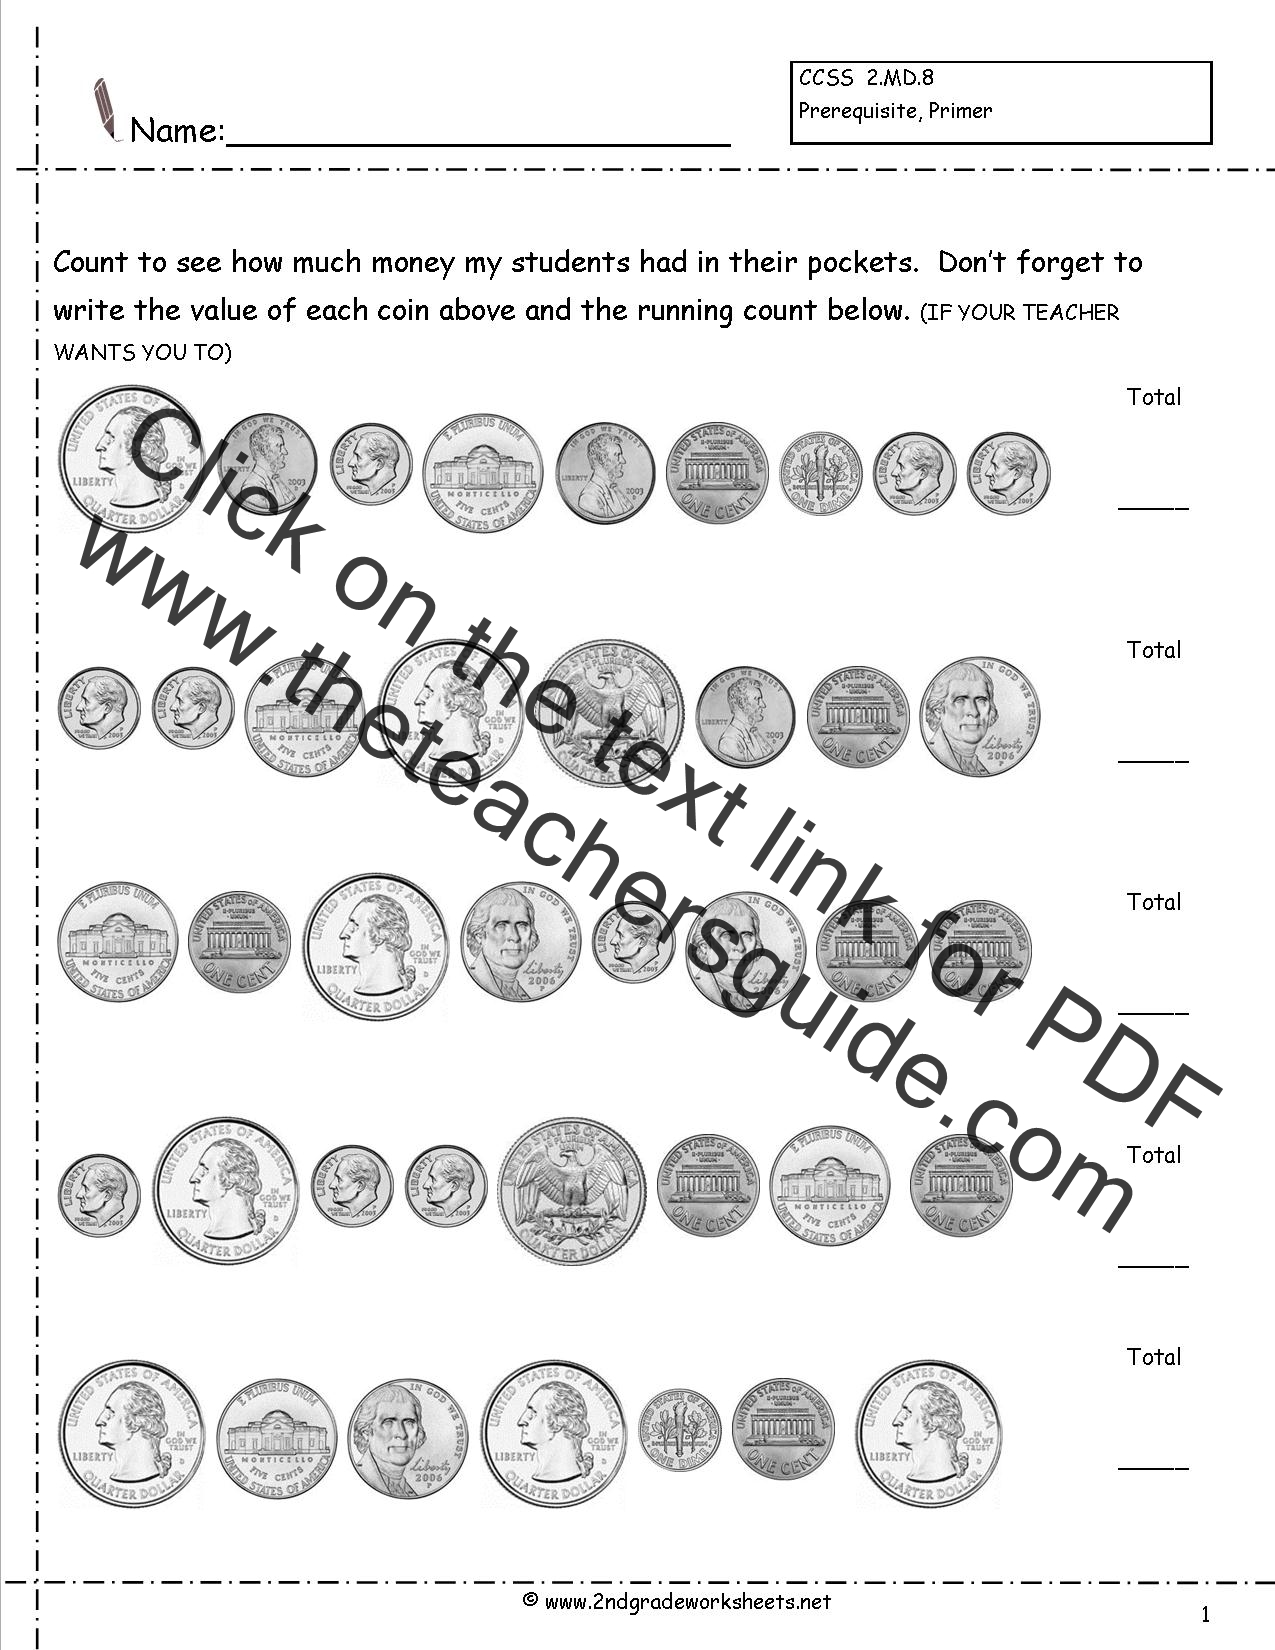 Counting Coins and Money Worksheets and Printouts – Counting Pennies Worksheet